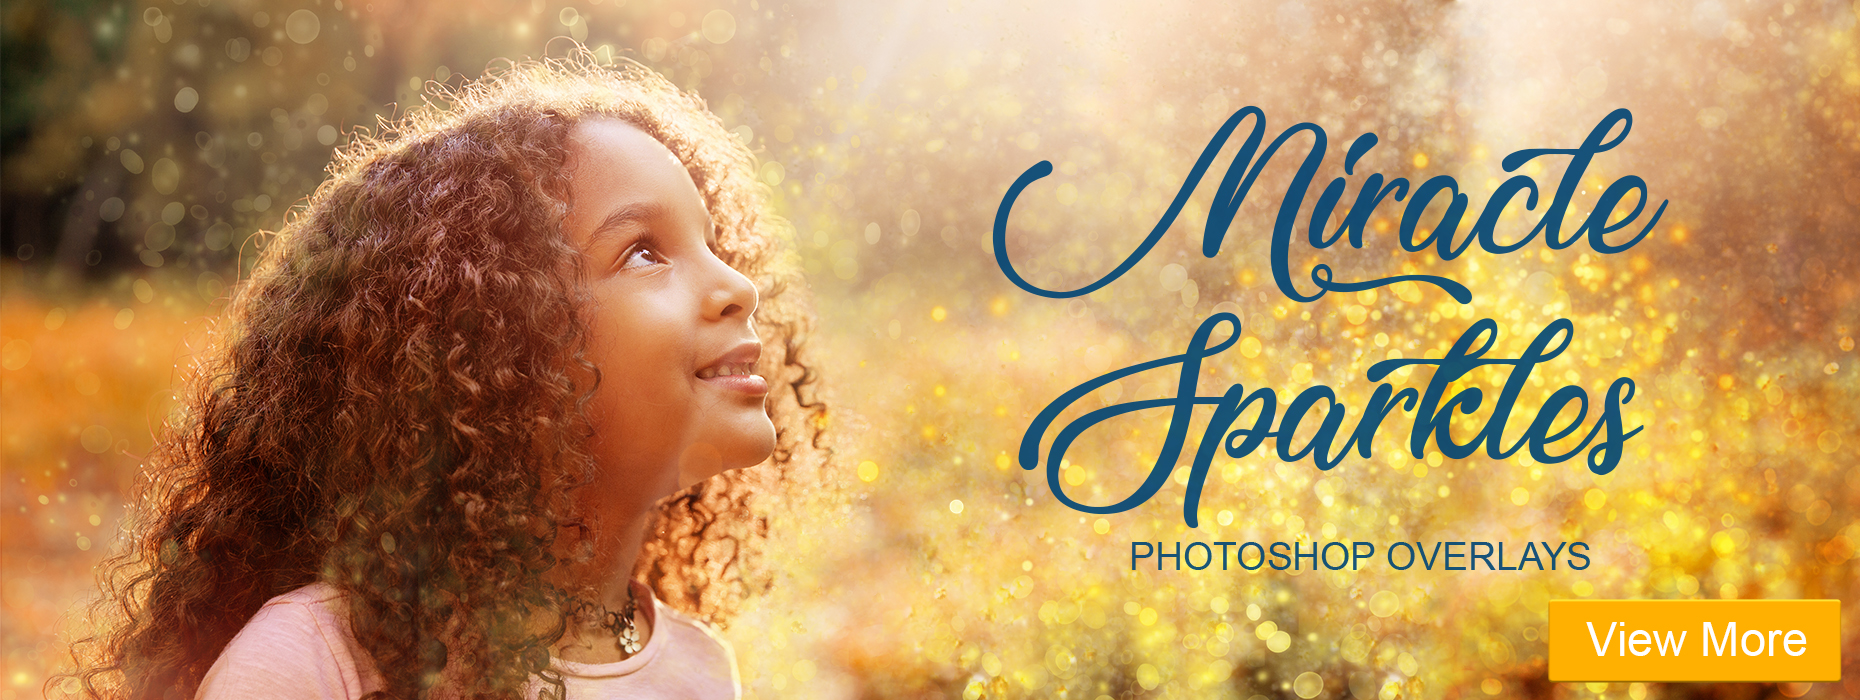 dust overlay photoshop miracle sparkles photoshop overlays cover girl